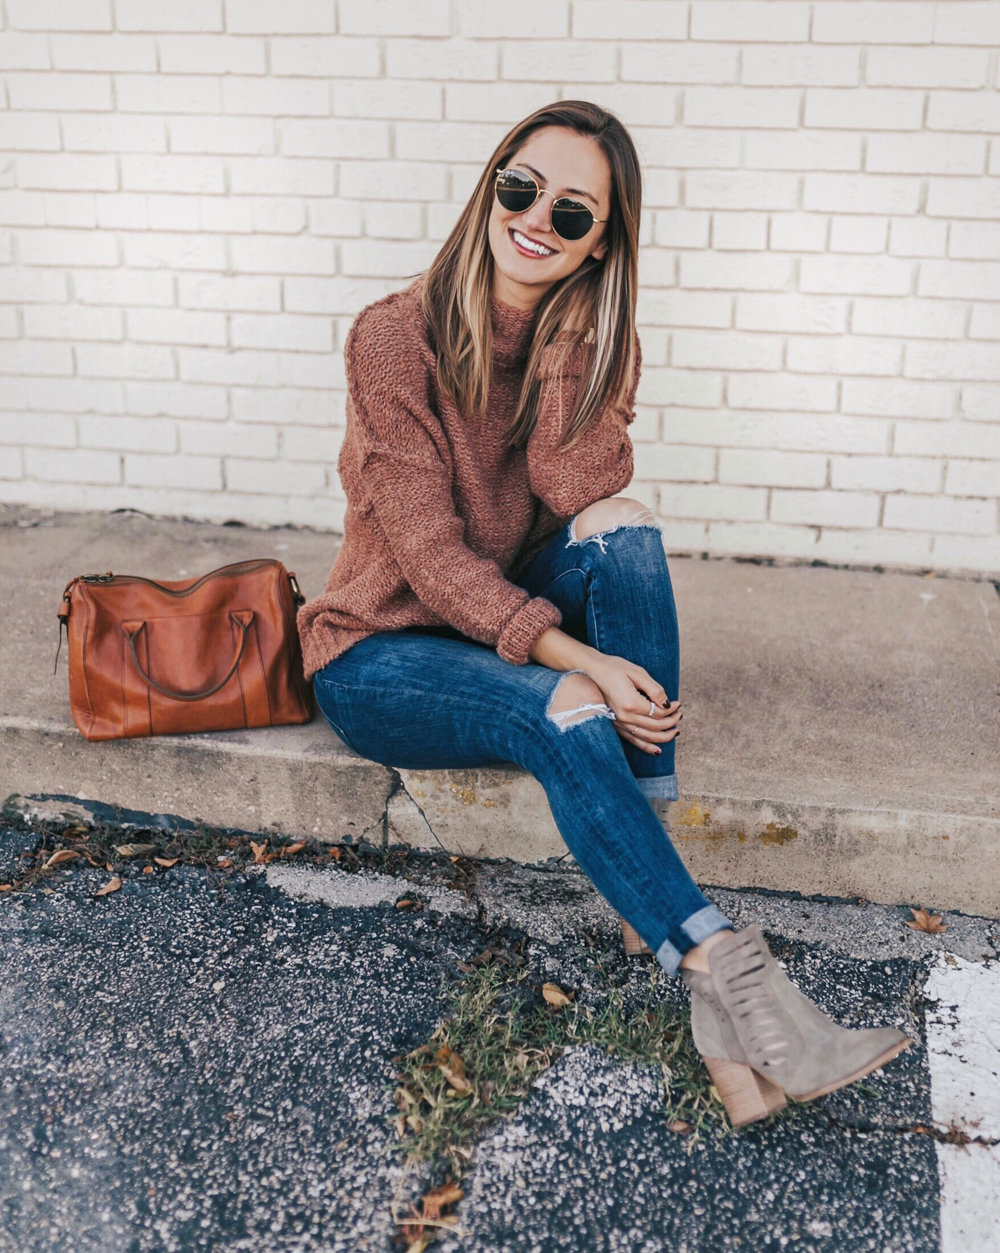 livvyland-blog-olivia-watson-instagram-roundup-livvylandblog-fall-outfit-mauve-sweater-taupe-ankle-booties-austin-texas-fashion-blogger